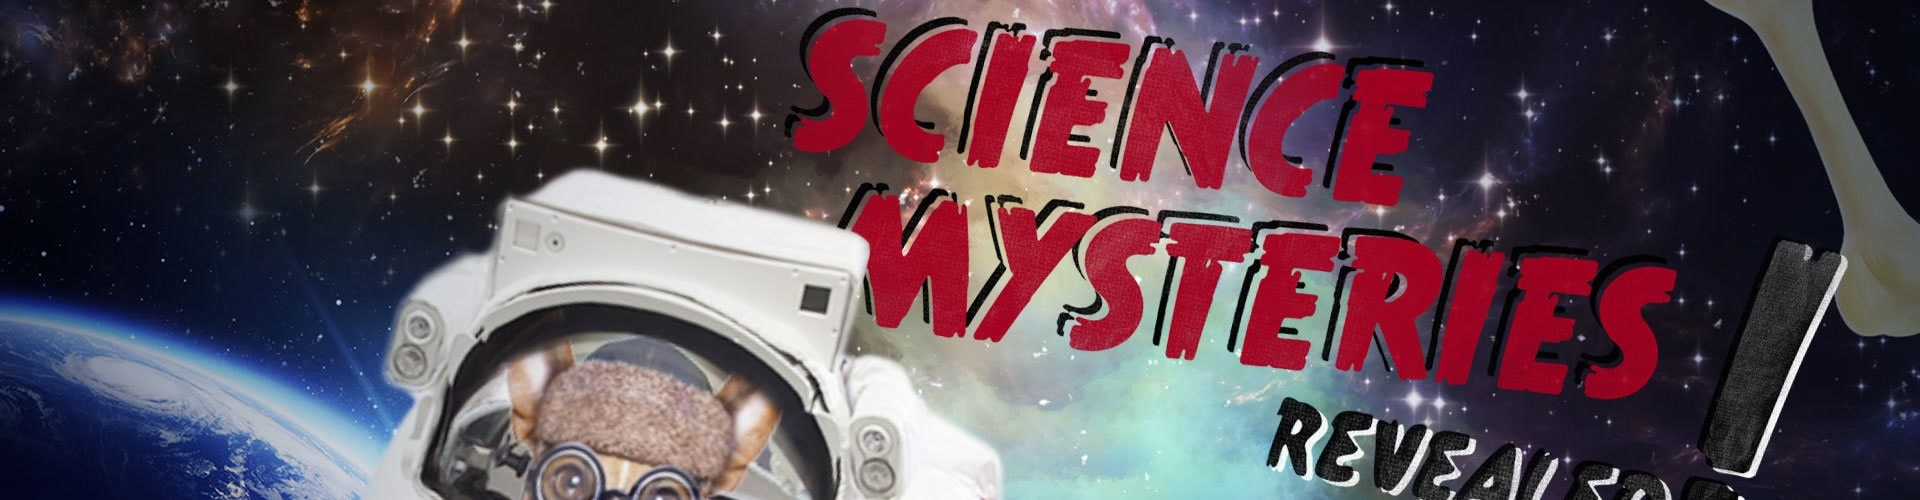 Watch Science Mysteries Revealed Online